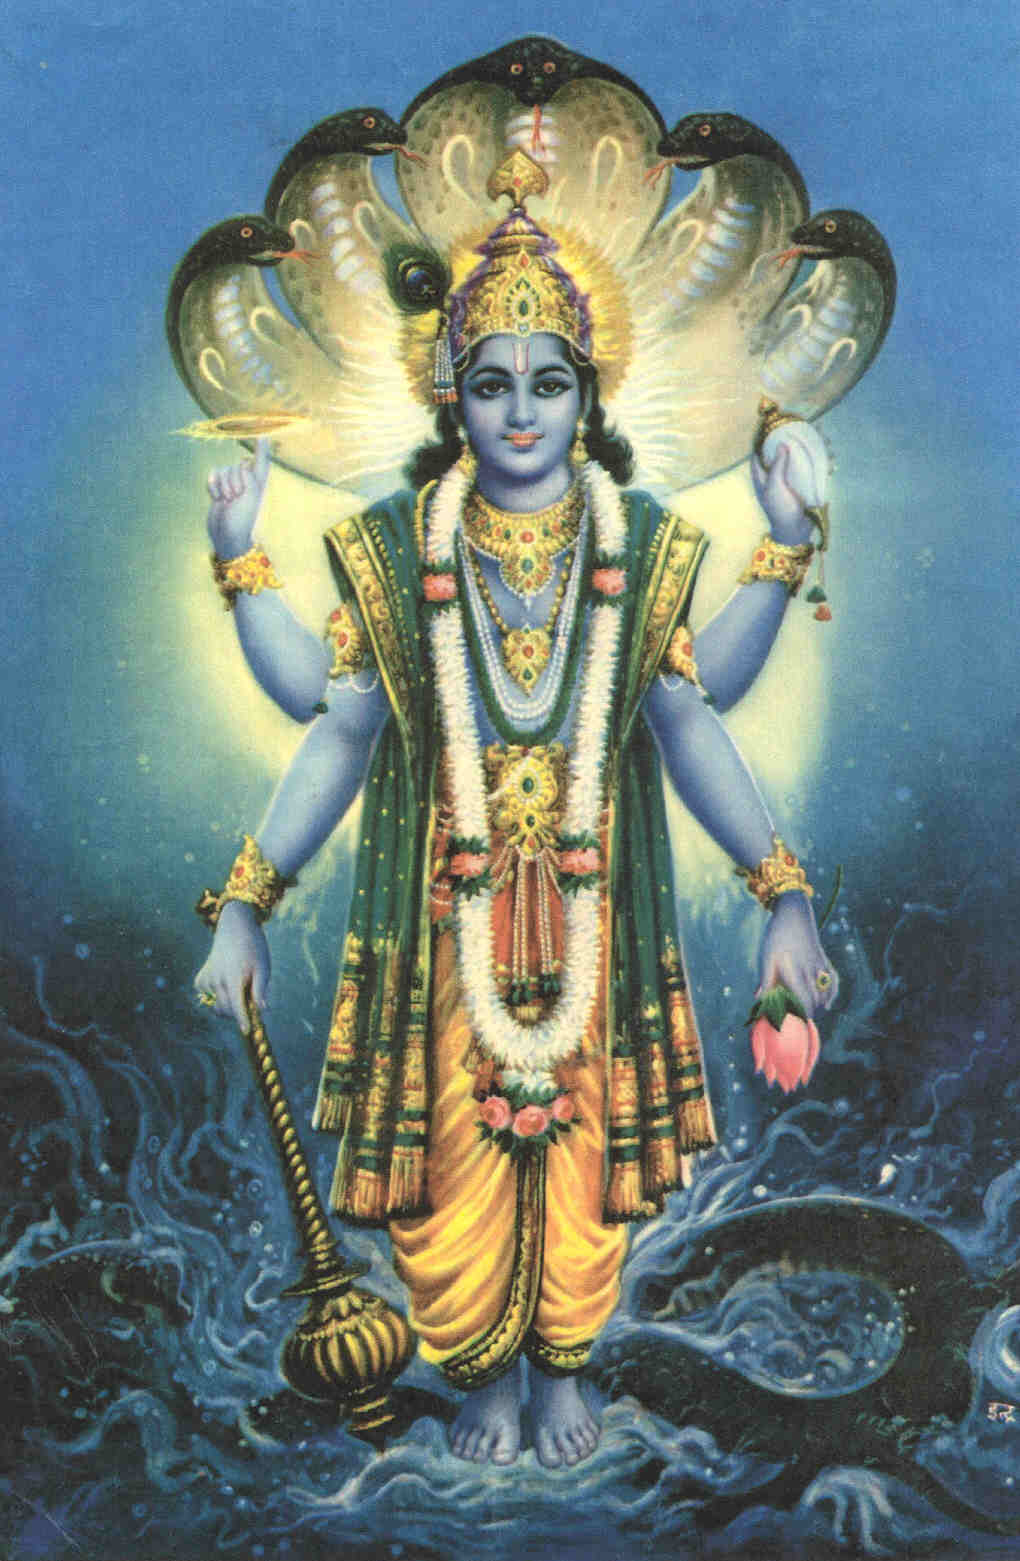 Hindu Devotional Blog: Vishnu Sahasranamam Stotram Lyrics - 1000 Names